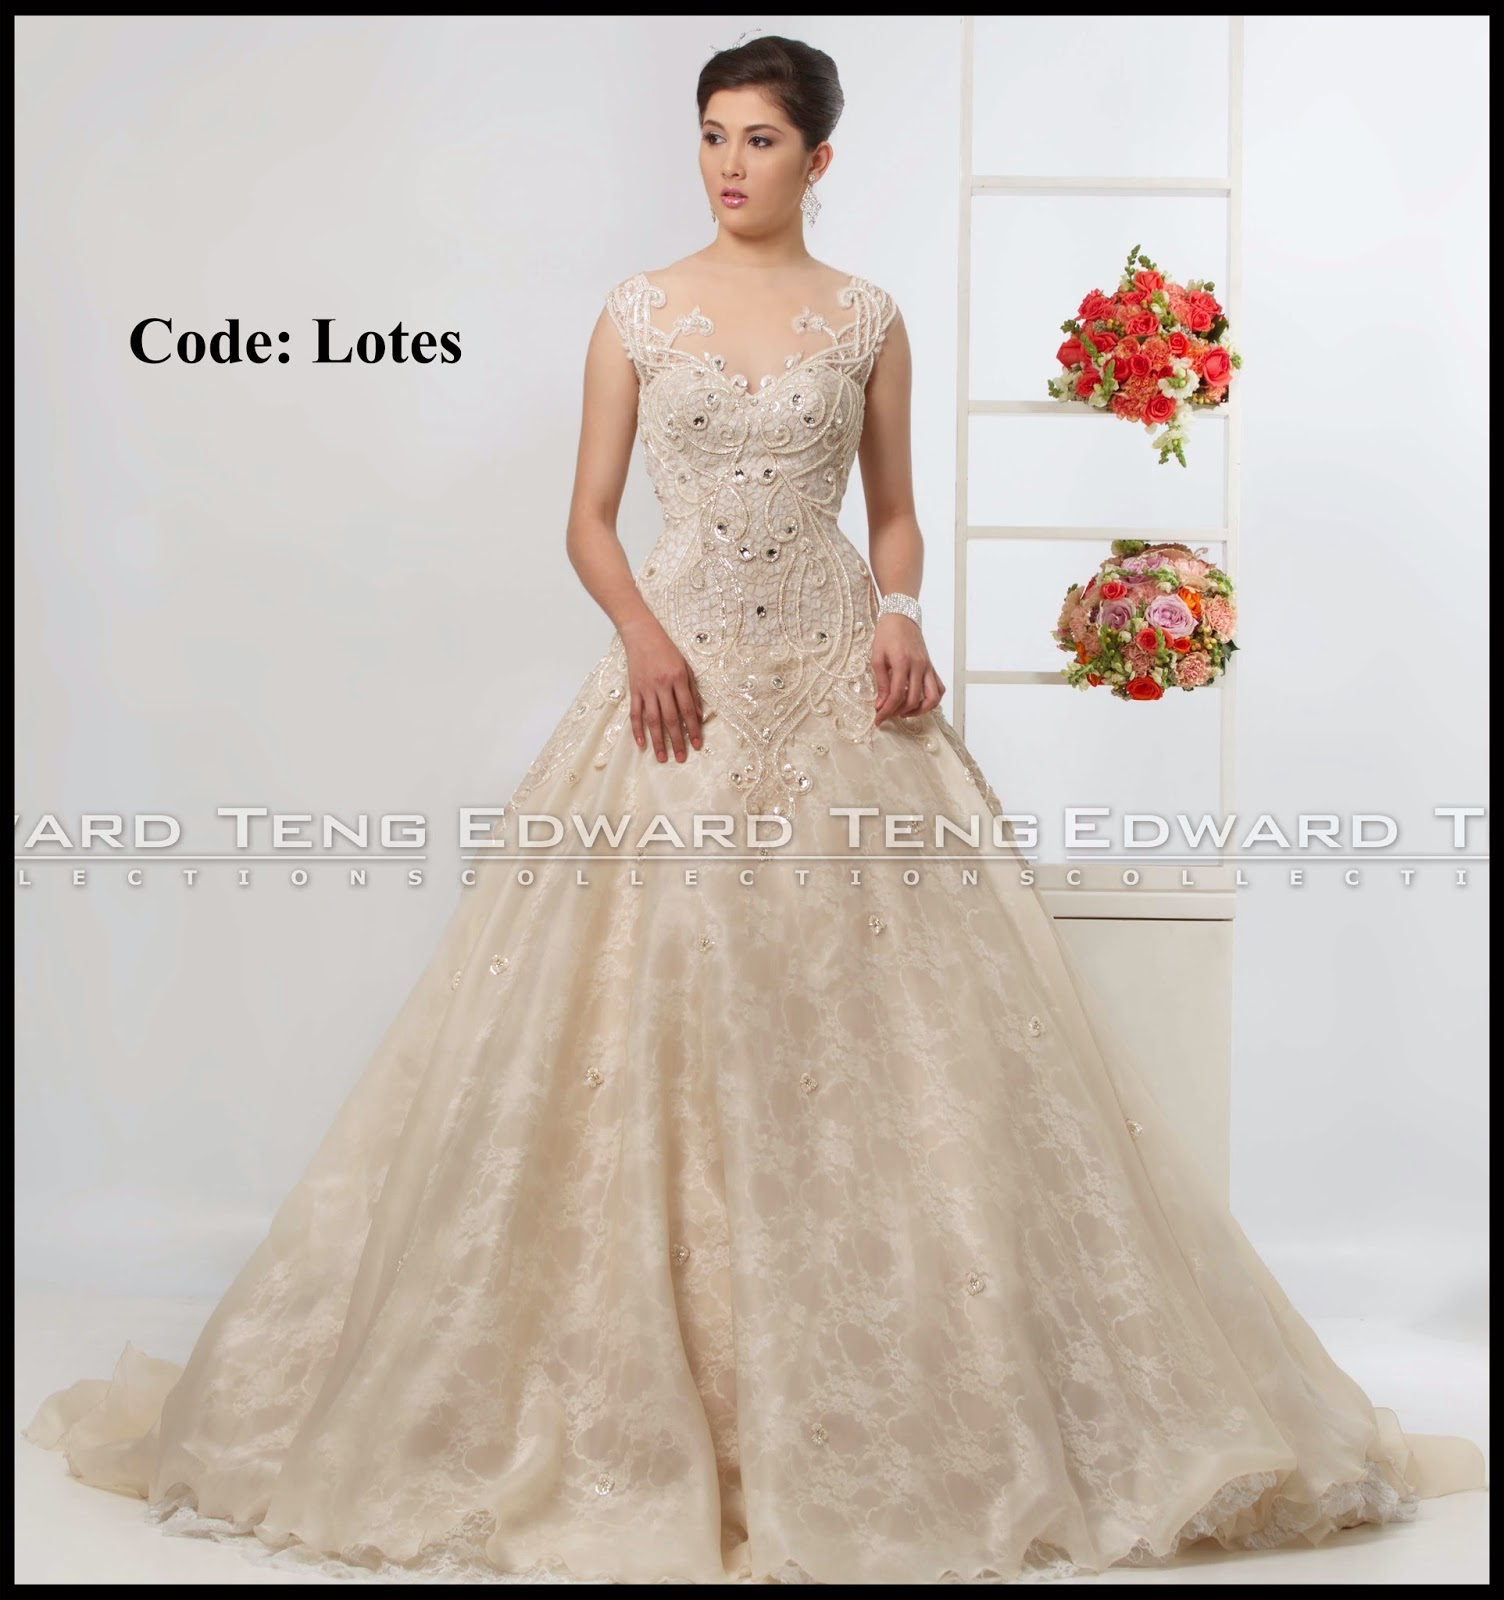 Wedding Gown Rates Philippines: Philippine Bridal Gowns: 2015 NEW COLLECTION